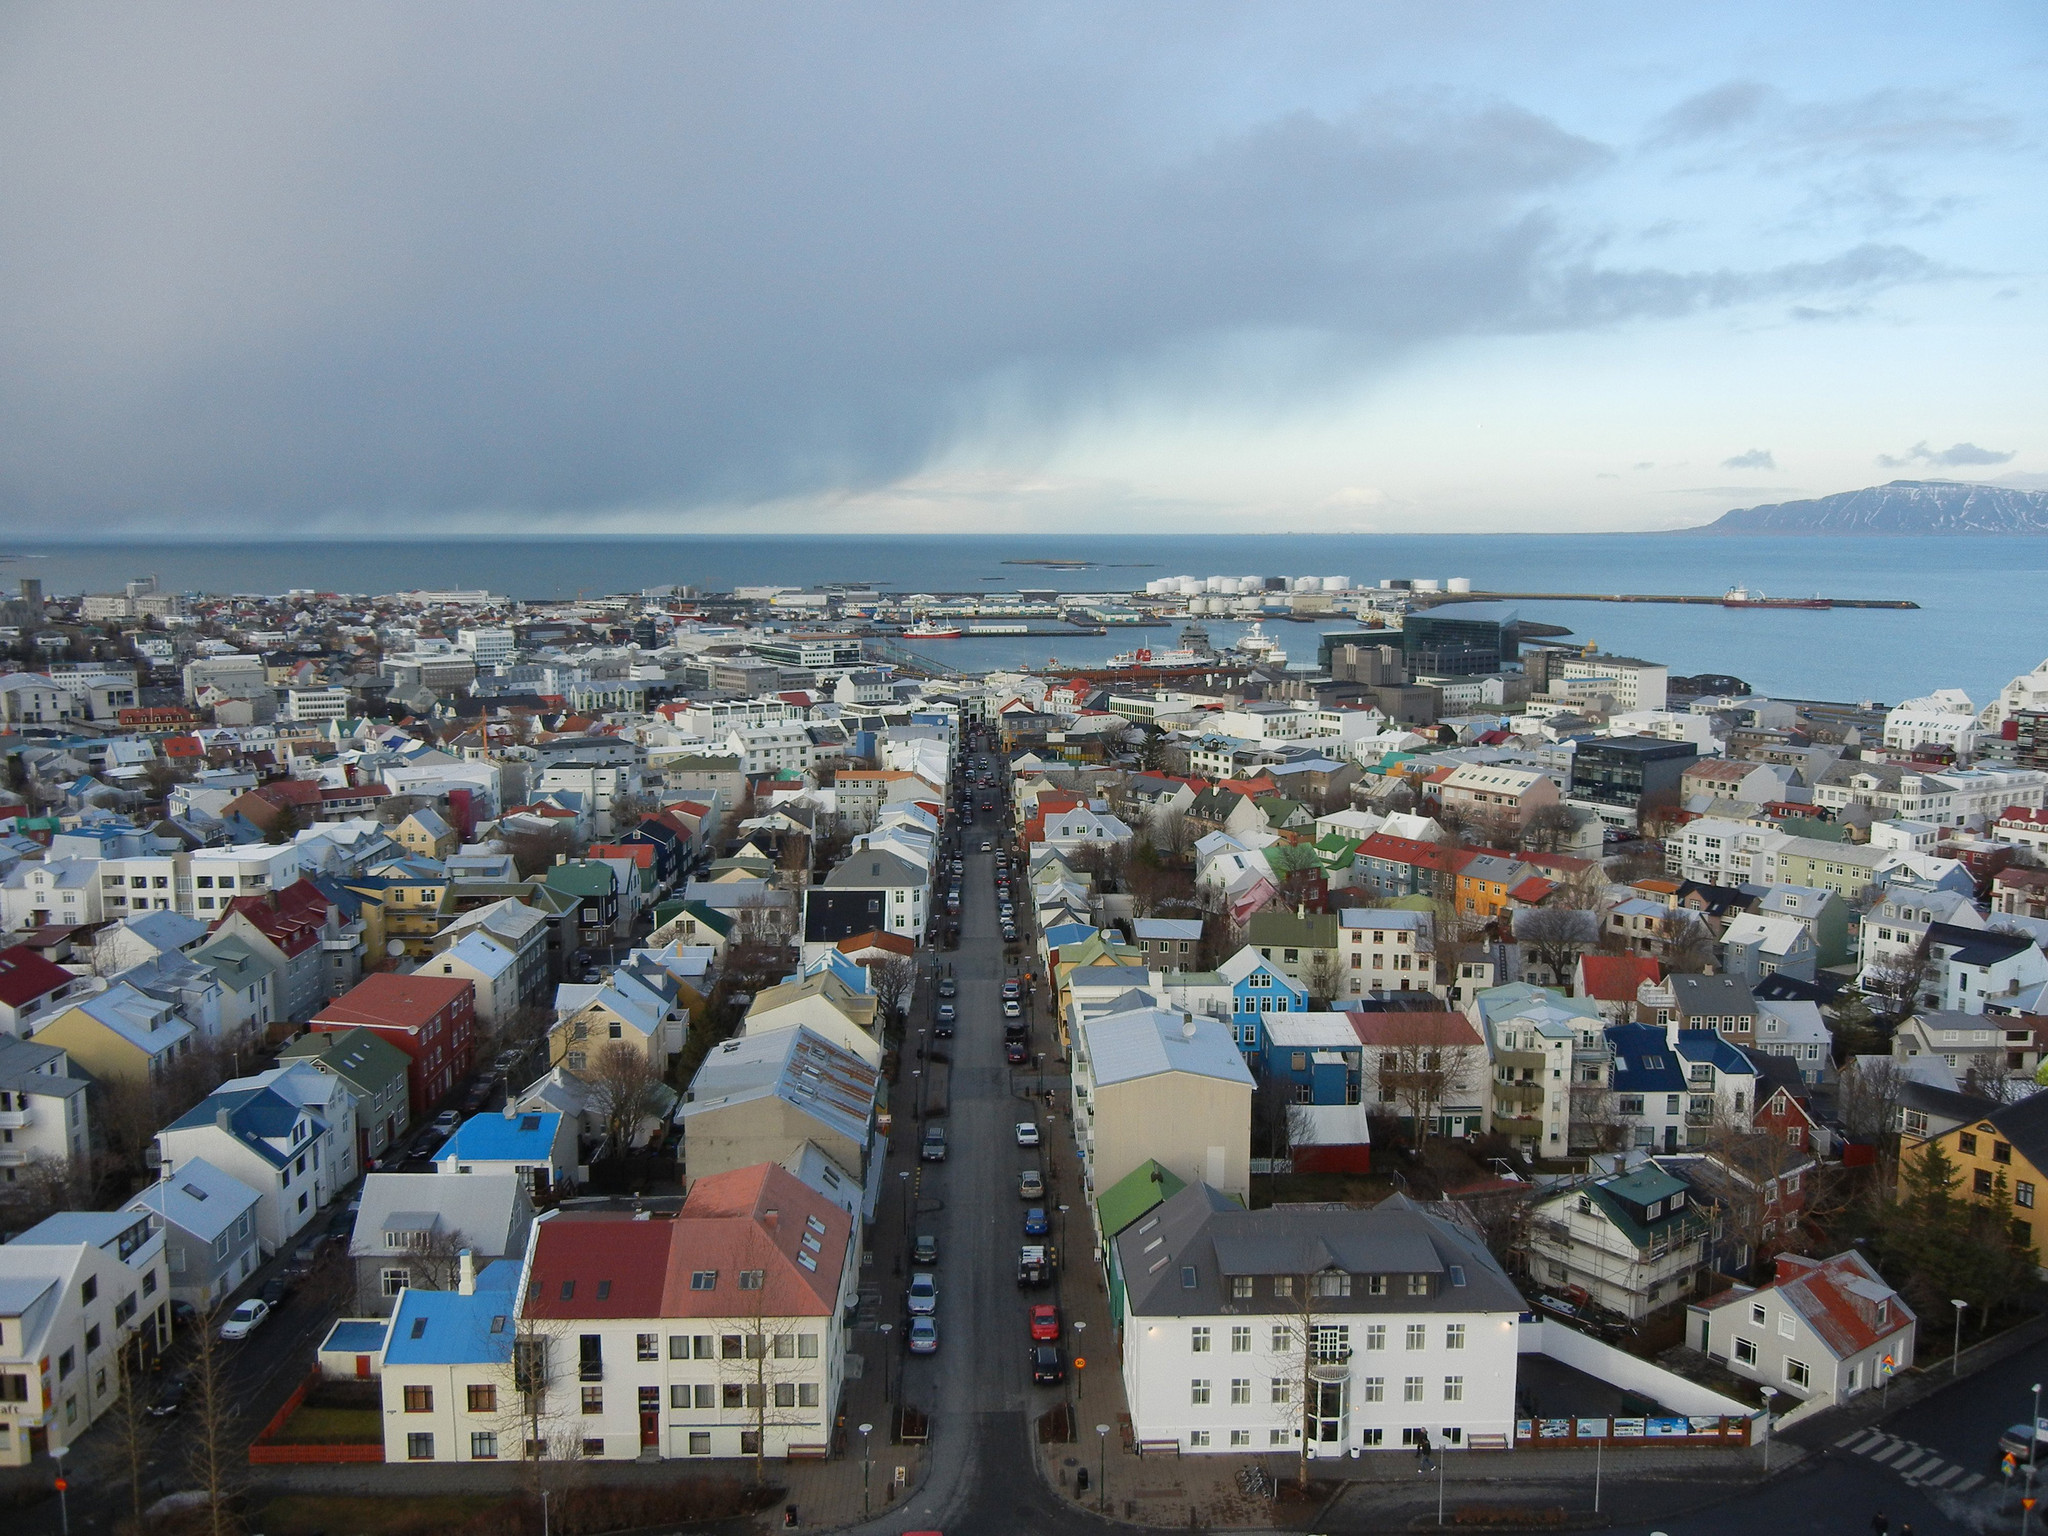 Reykjavik, Iceland, spreads out in this view from the tower of the Hallgrimskirkja church.